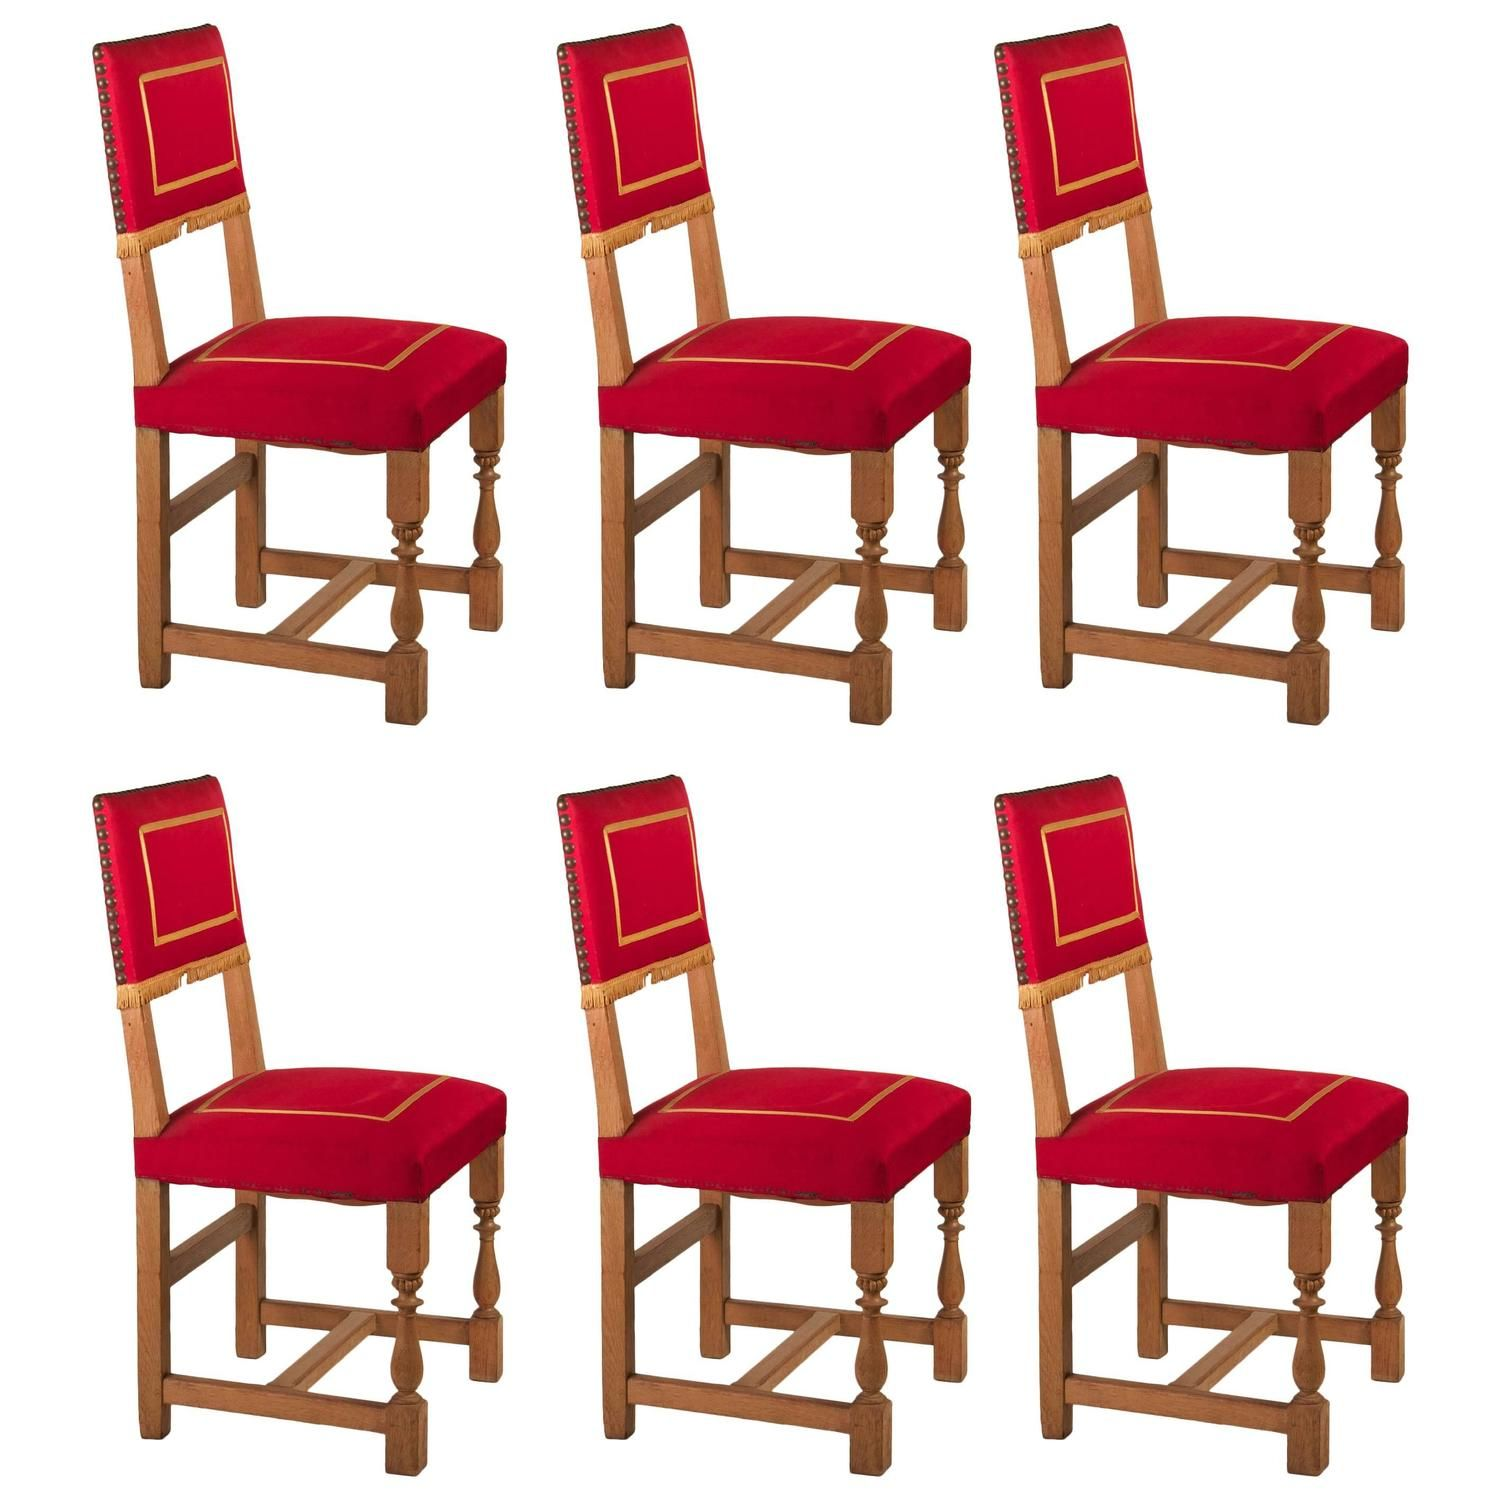 Terrific Set Of Six 1Stdibs Dining Room Chairs 1940S Dining Caraccident5 Cool Chair Designs And Ideas Caraccident5Info